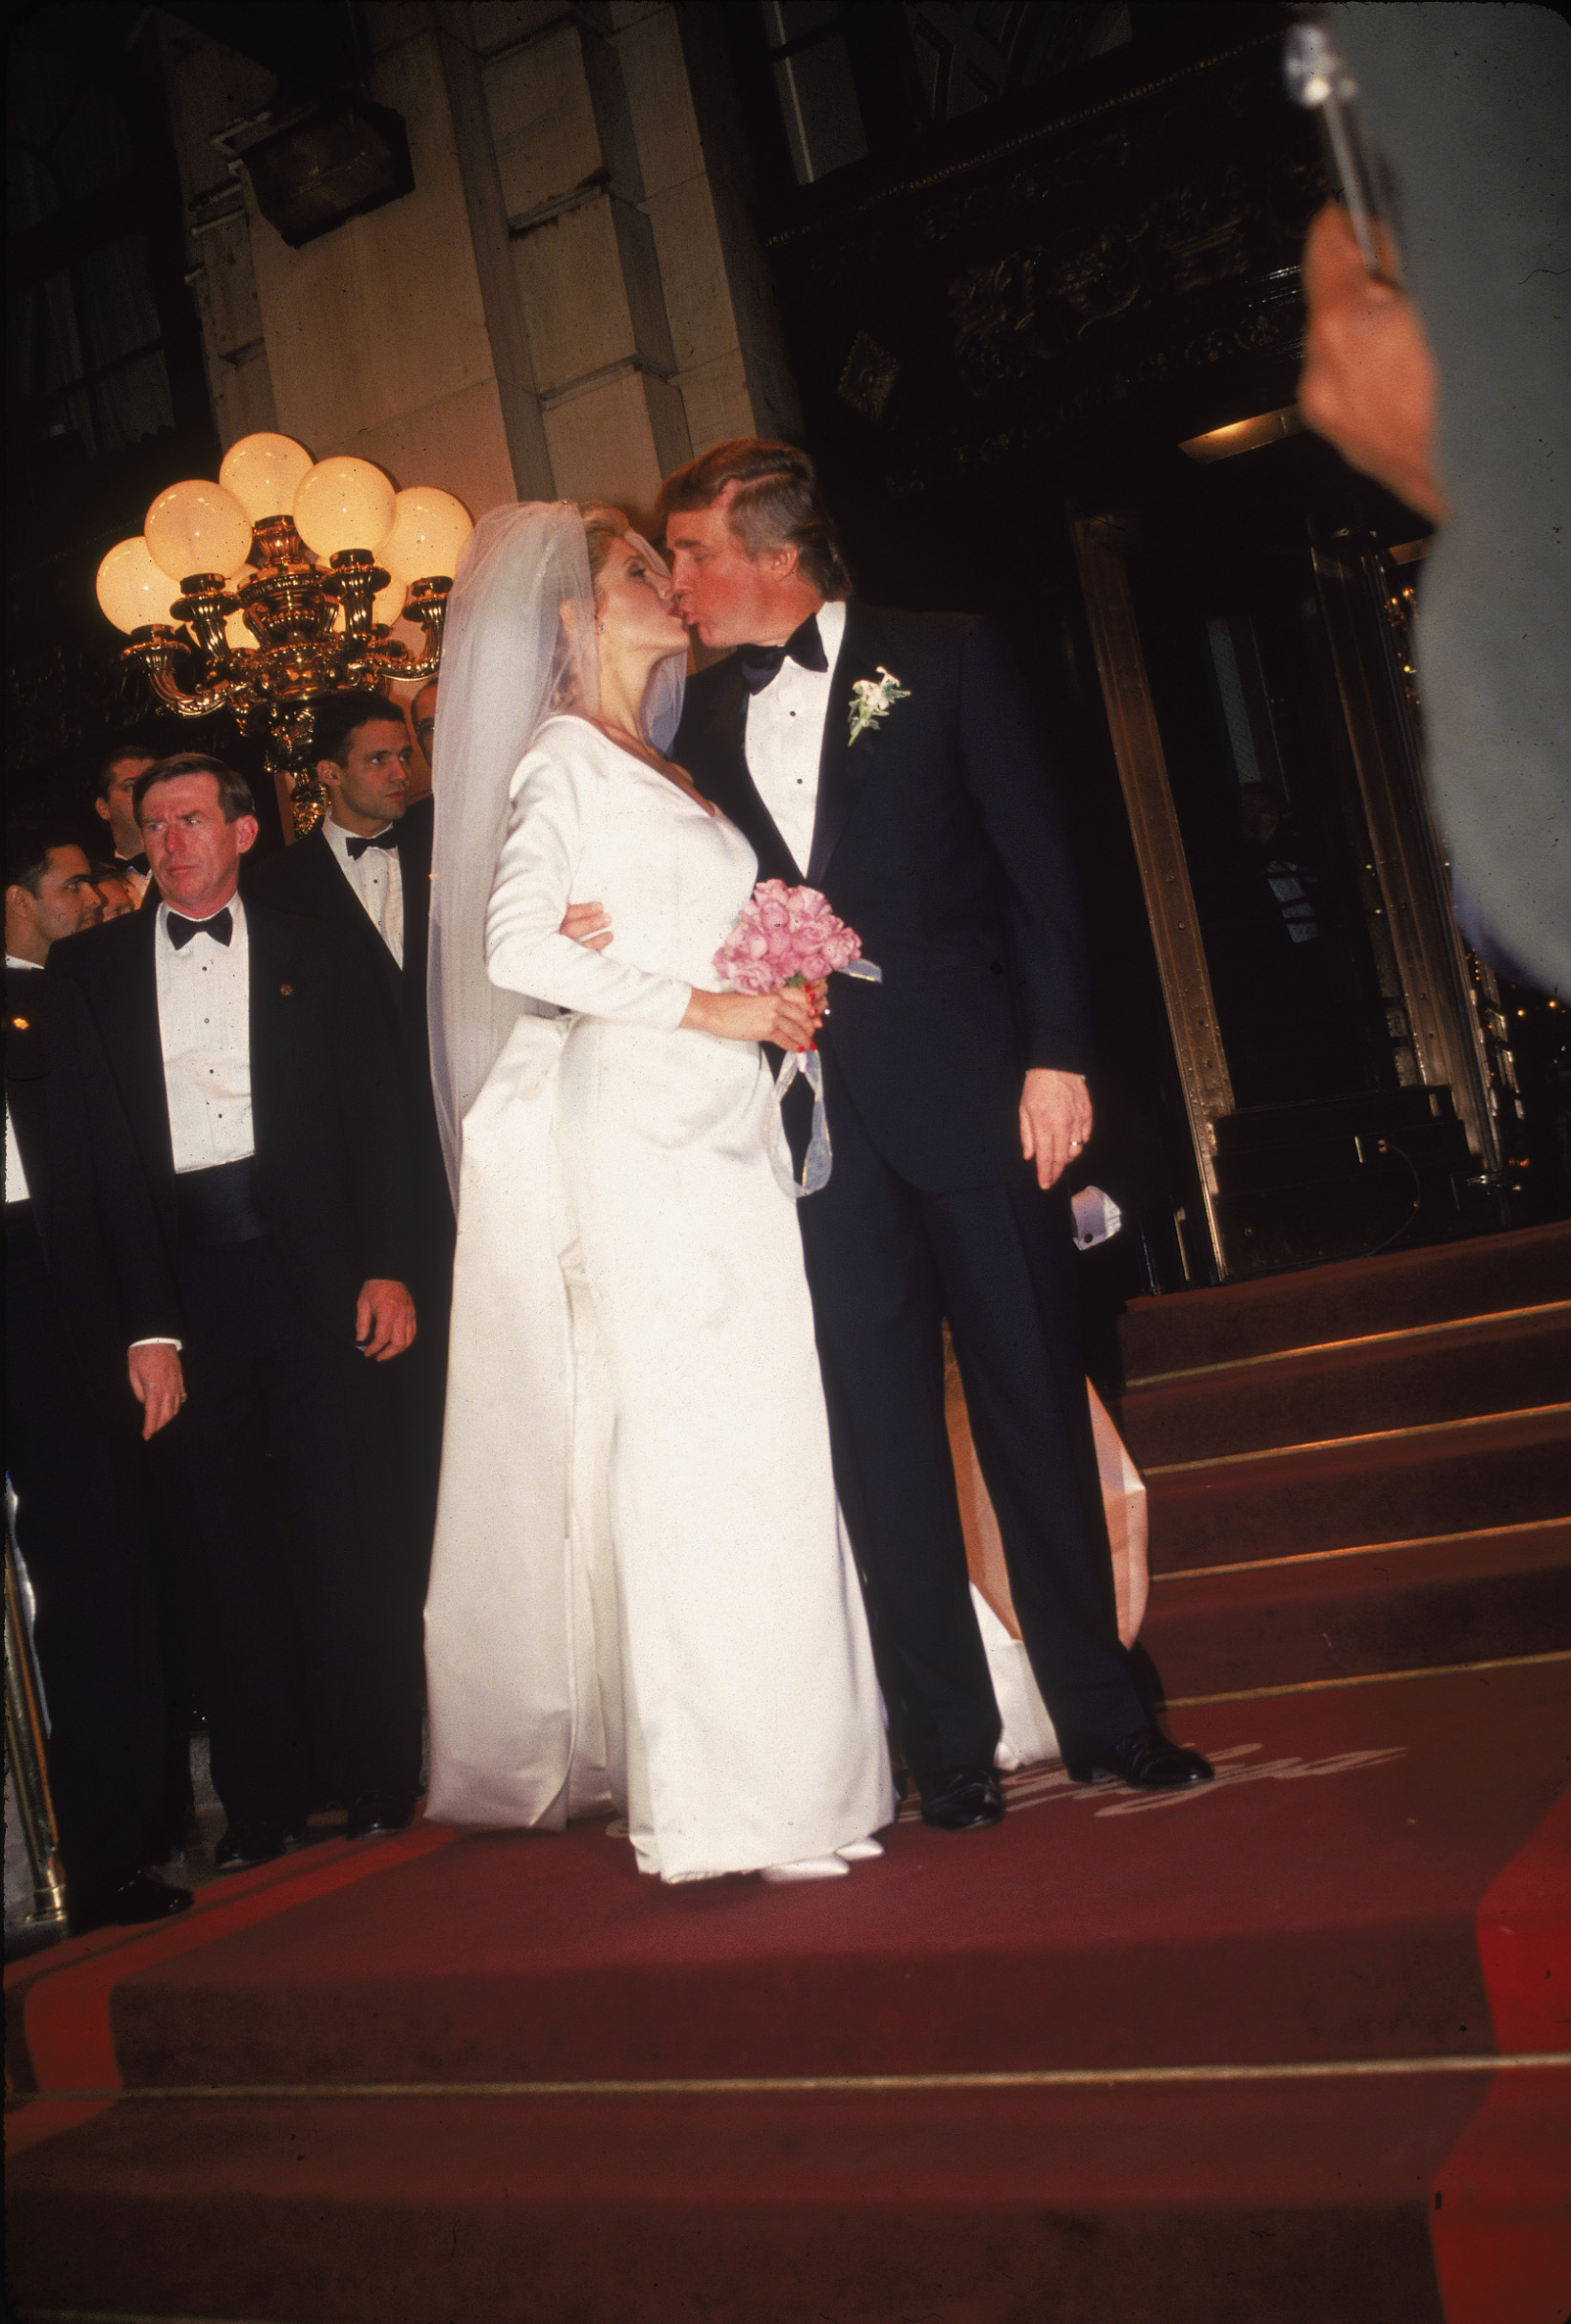 American businessman Donald Trump kisses his new bride Marla Maples following their wedding ceremony at Trump Plaza hotel, New York City, December 19, 1993. (Photo by Hulton Archive/Getty Images)